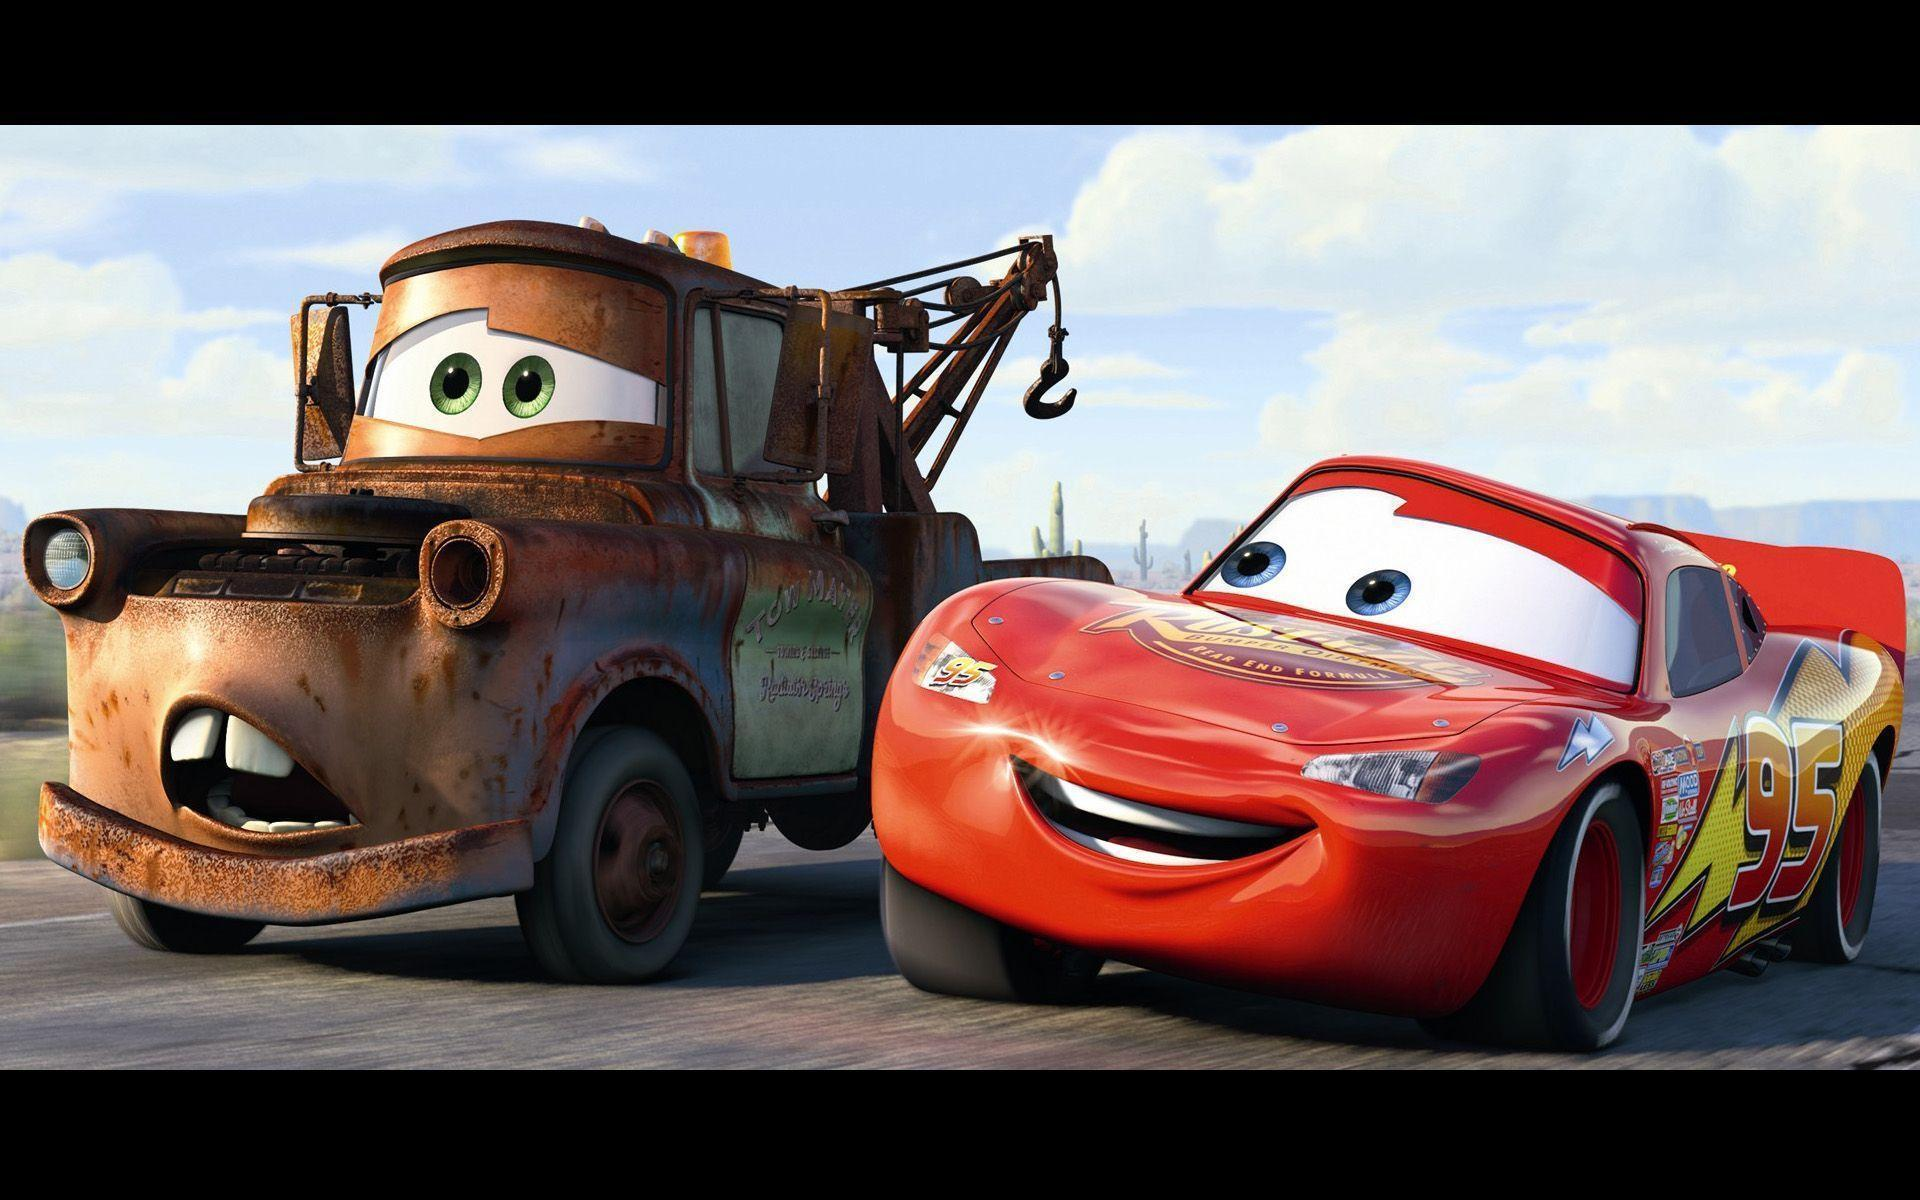 Cars 2 Cartoon Wallpaper HD For Desktop | Cartoons Images